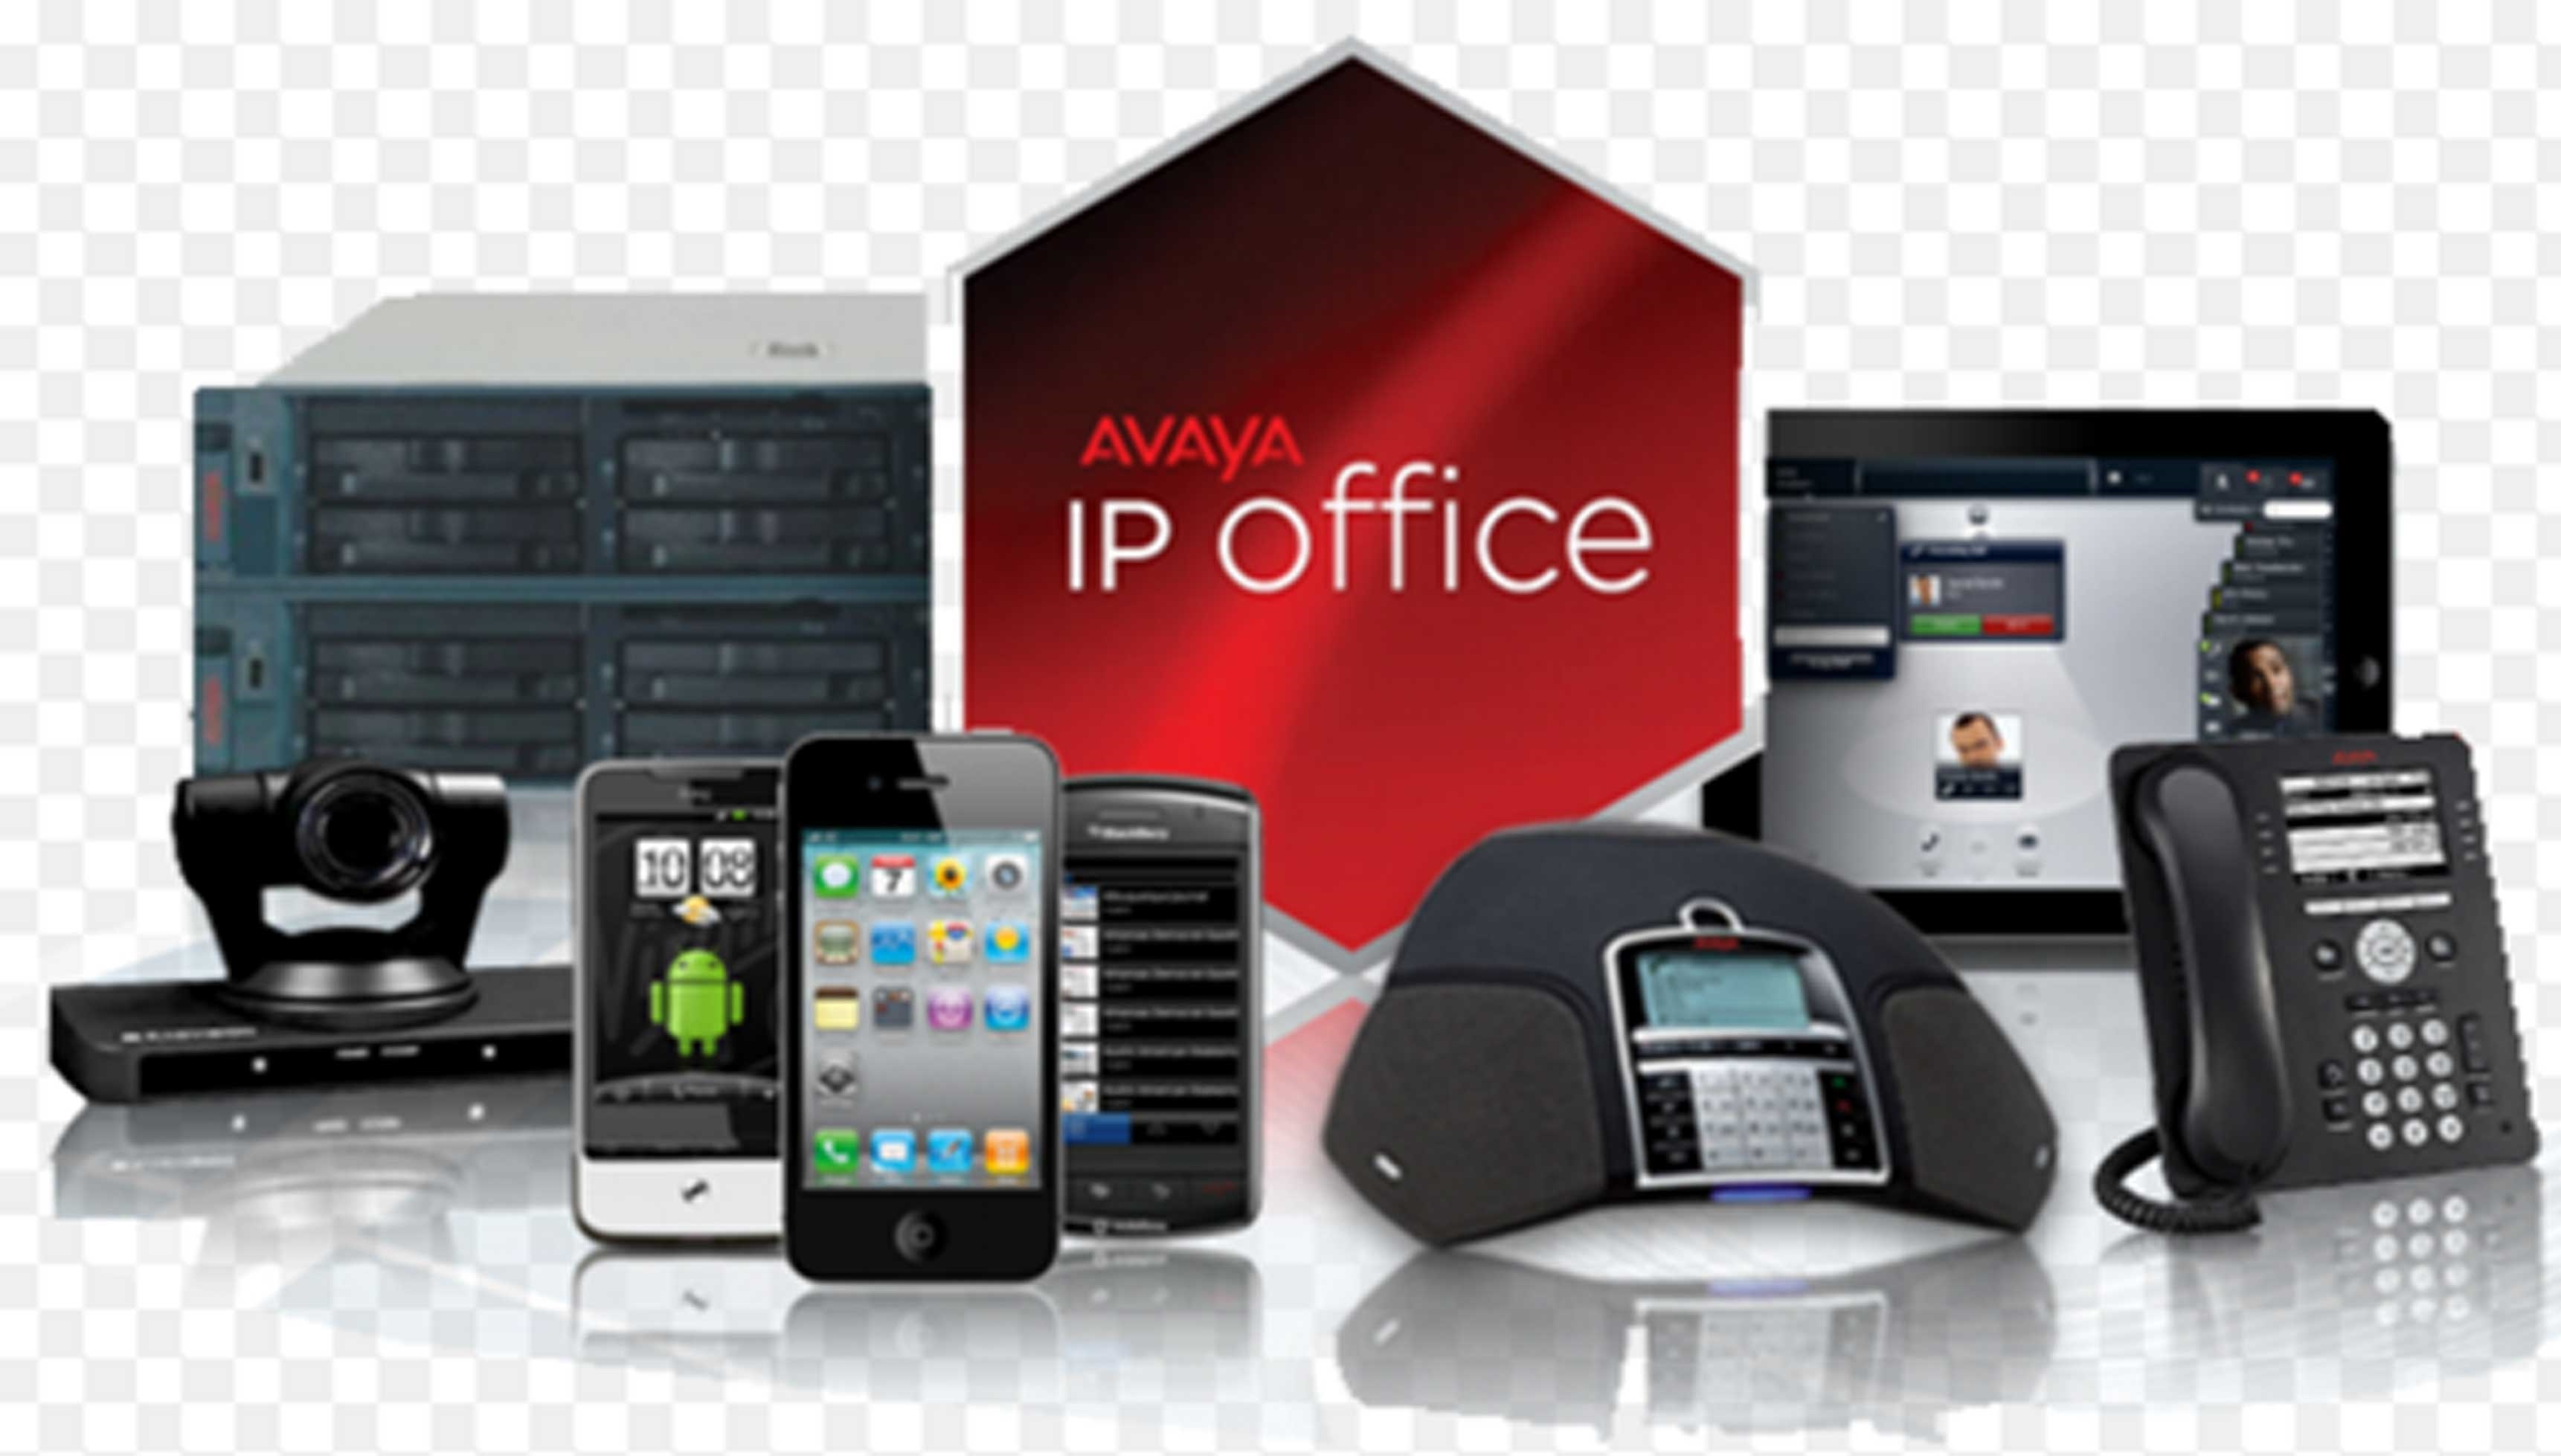 solutions we networks what offer office ip networking avaya telcom assist